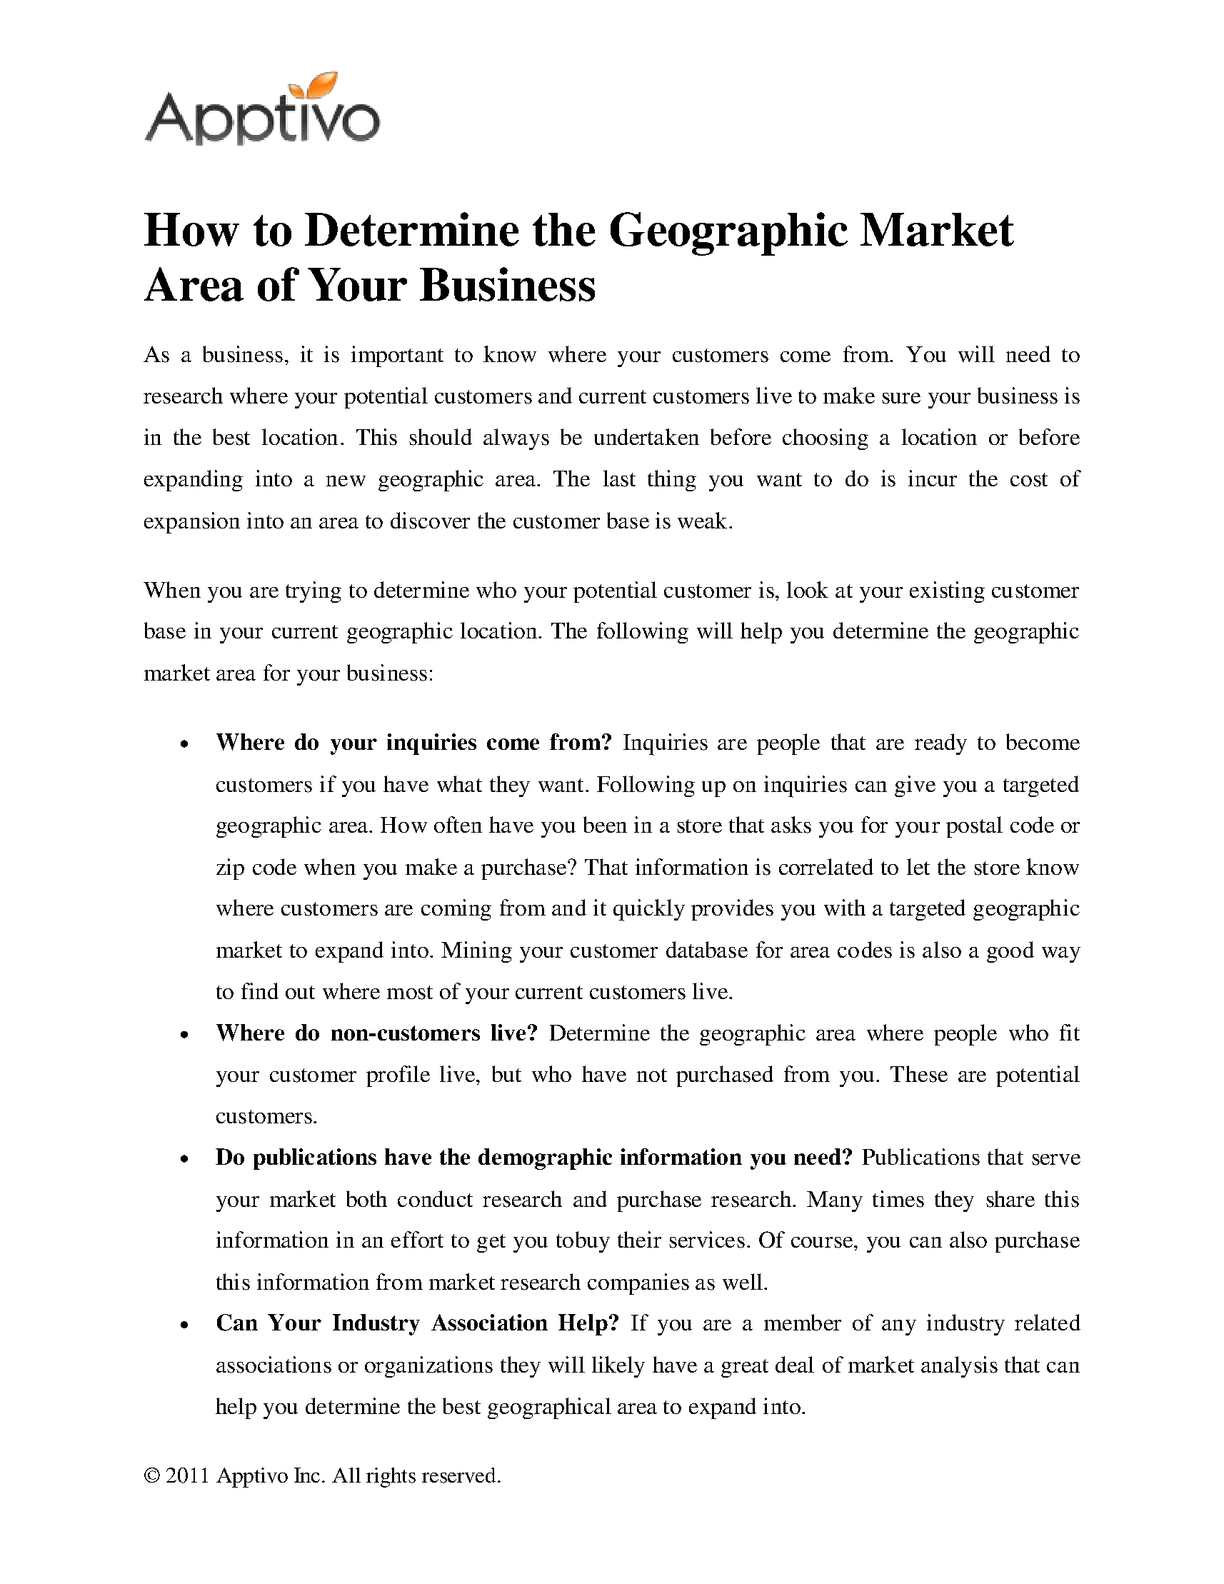 Calaméo - How to Determine the Geographic Market Area of